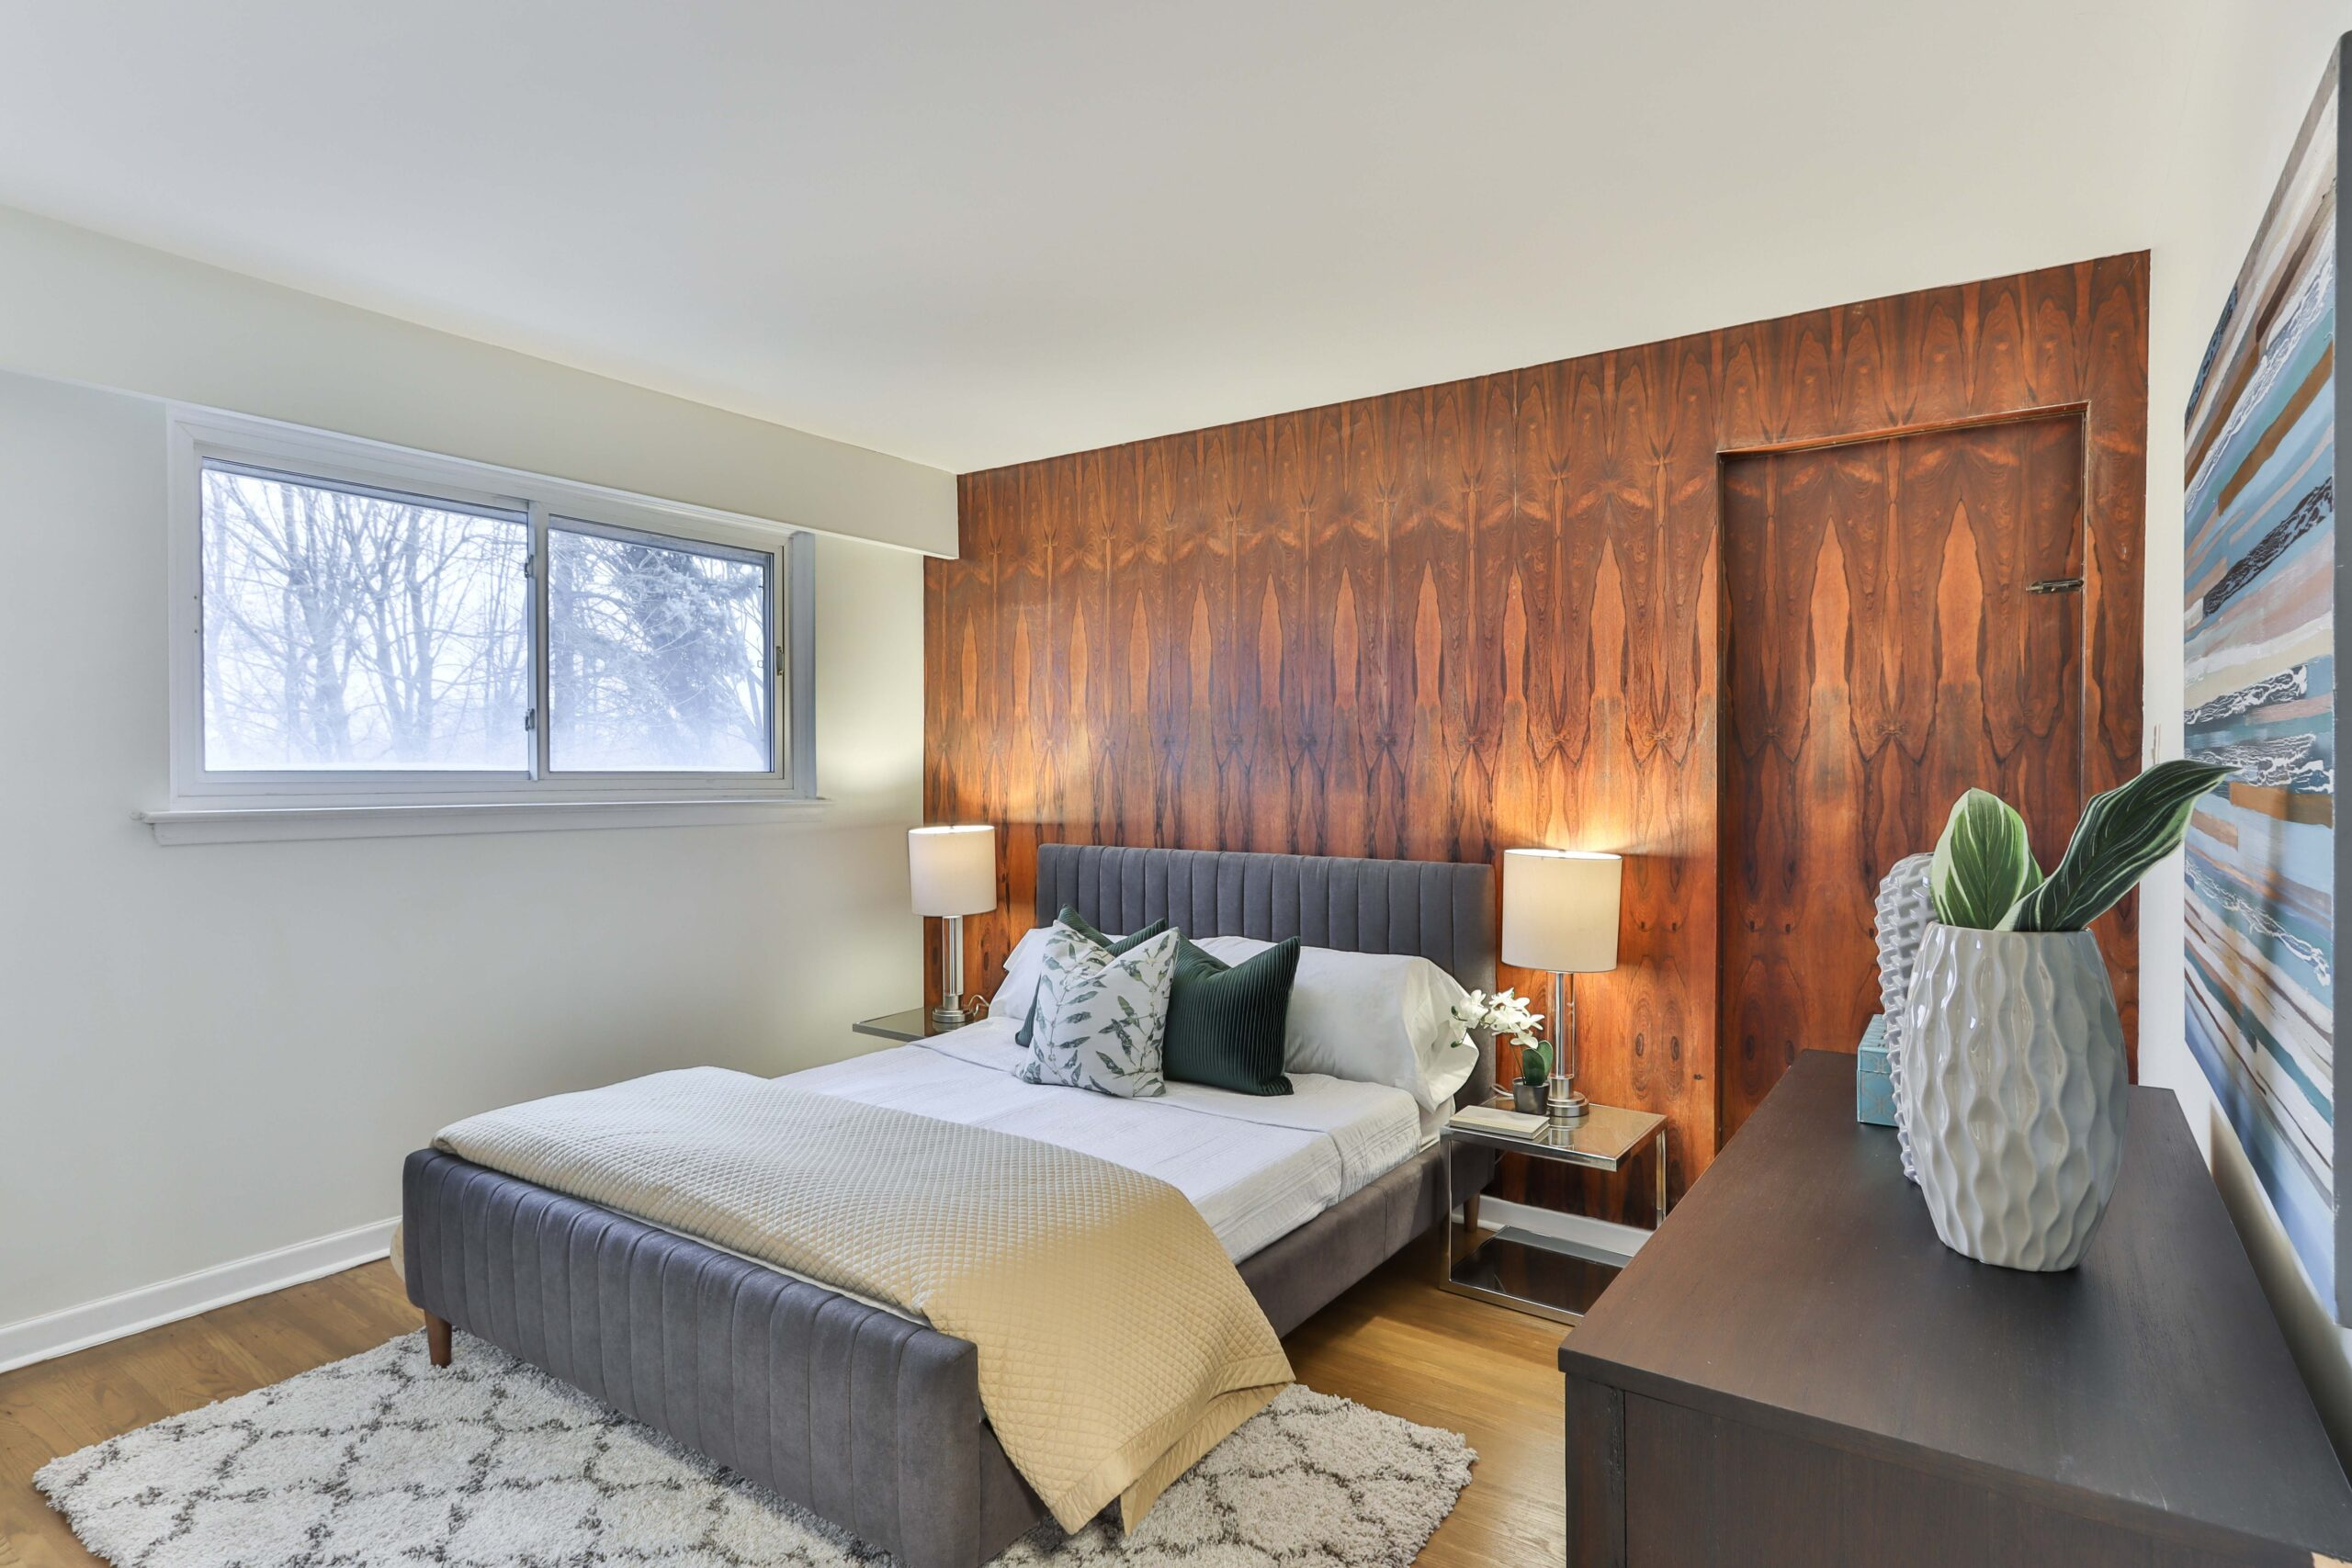 A bedroom with brown toned wallpapers on a wall